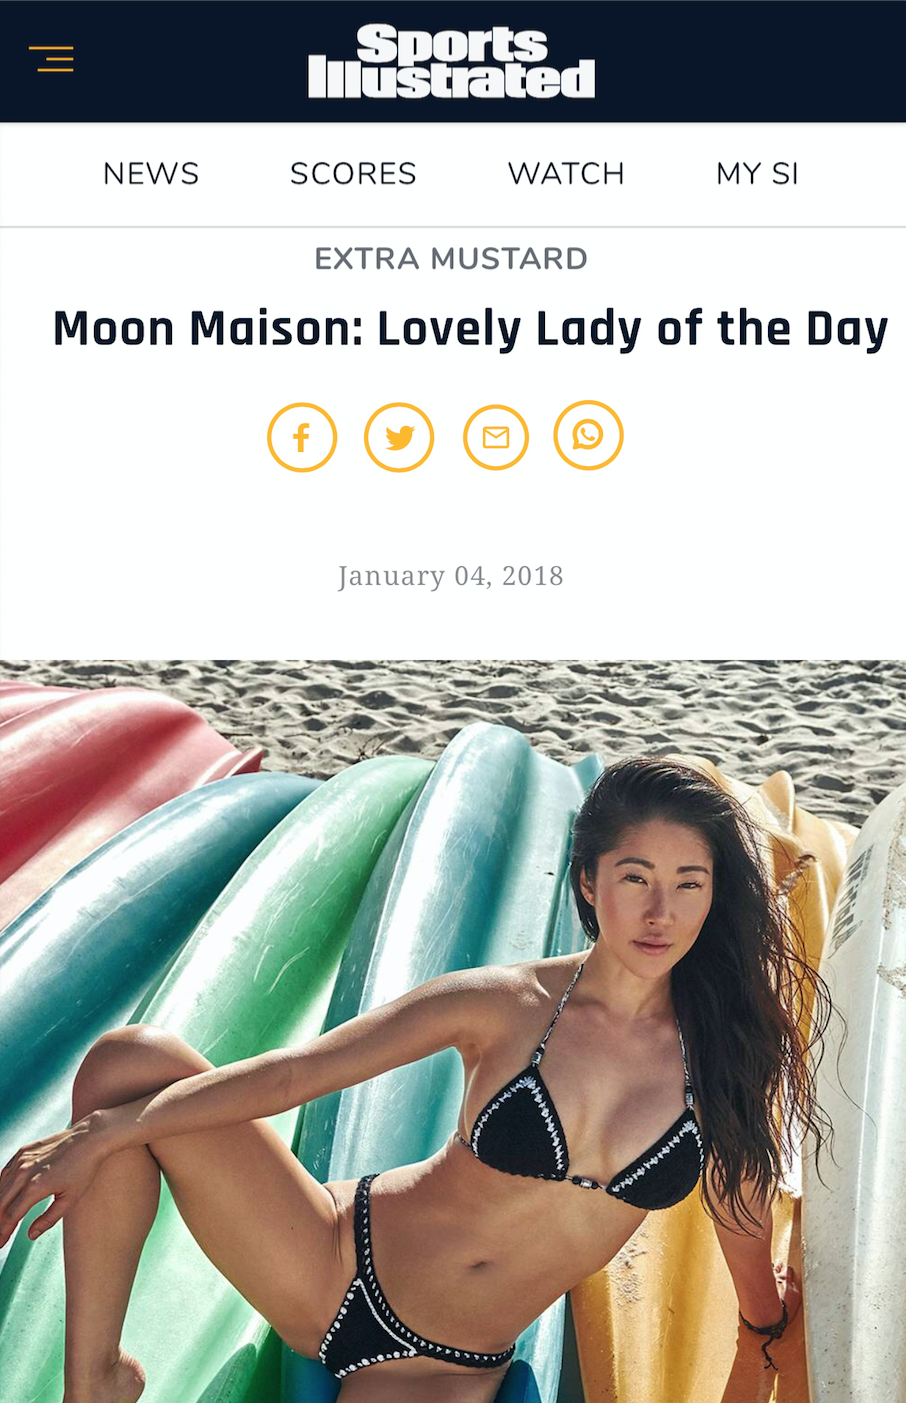 Nova Prime PR - Moon Maison SI Lovely Lady of the Day wearing @manie_one